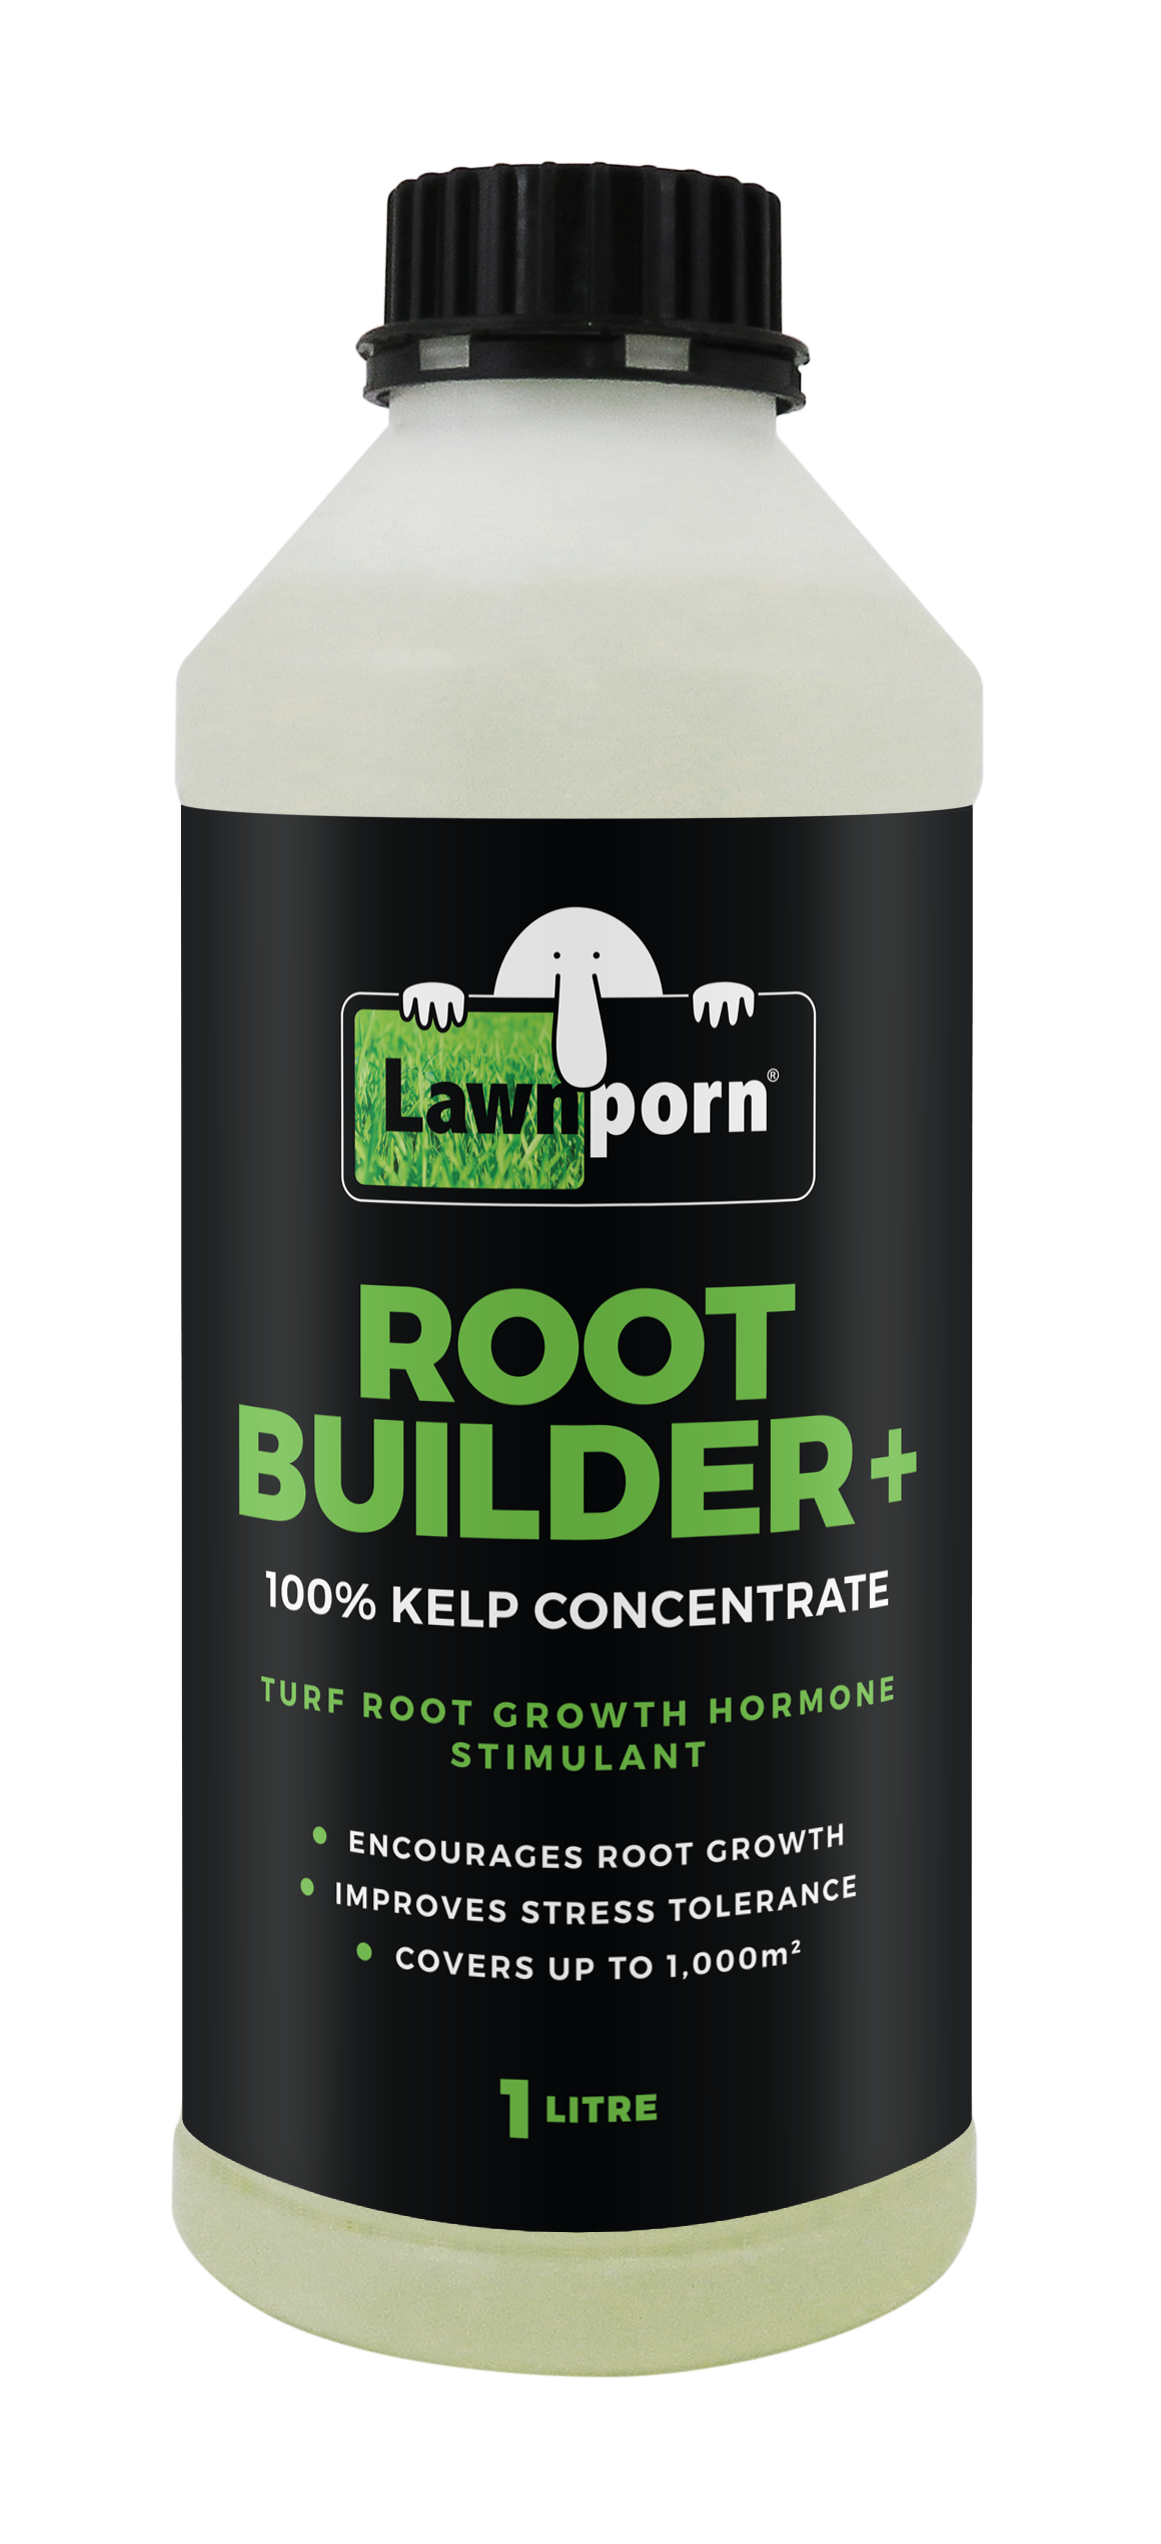 Lawnporn Root Builder Barmac Pty Ltd